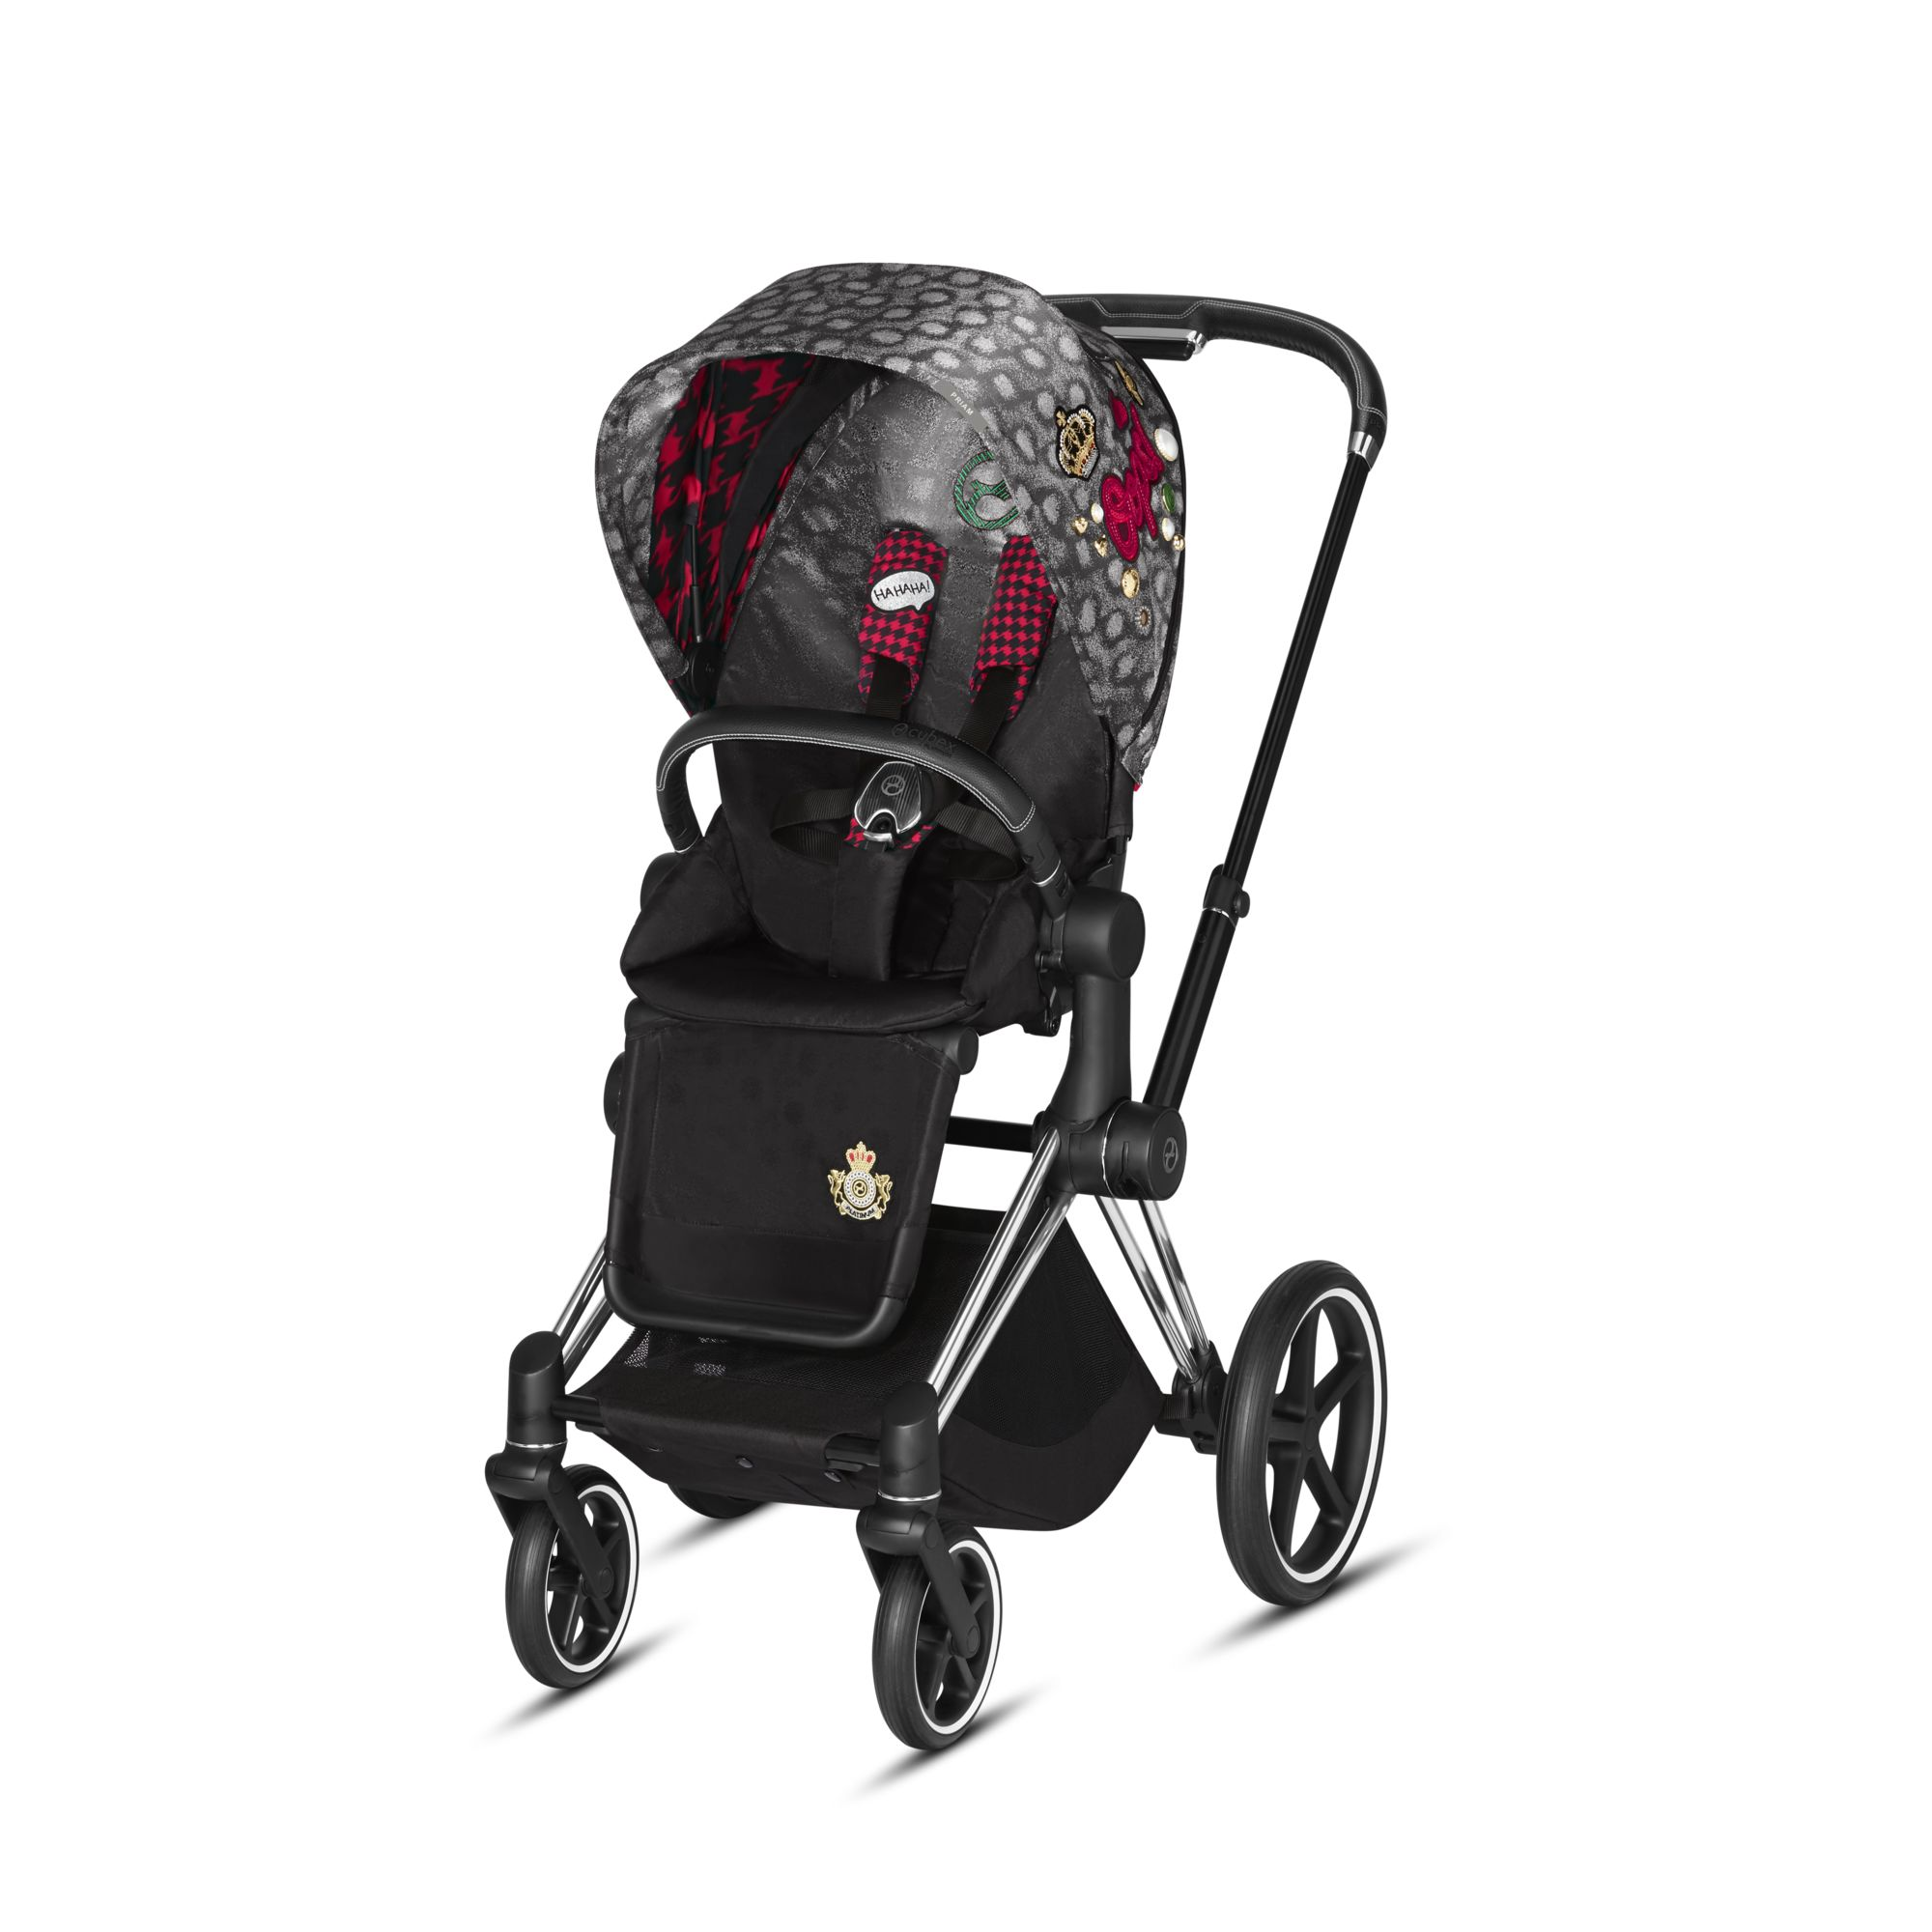 CYBEX Priam Seat Pack Fashion Rebellious 2021